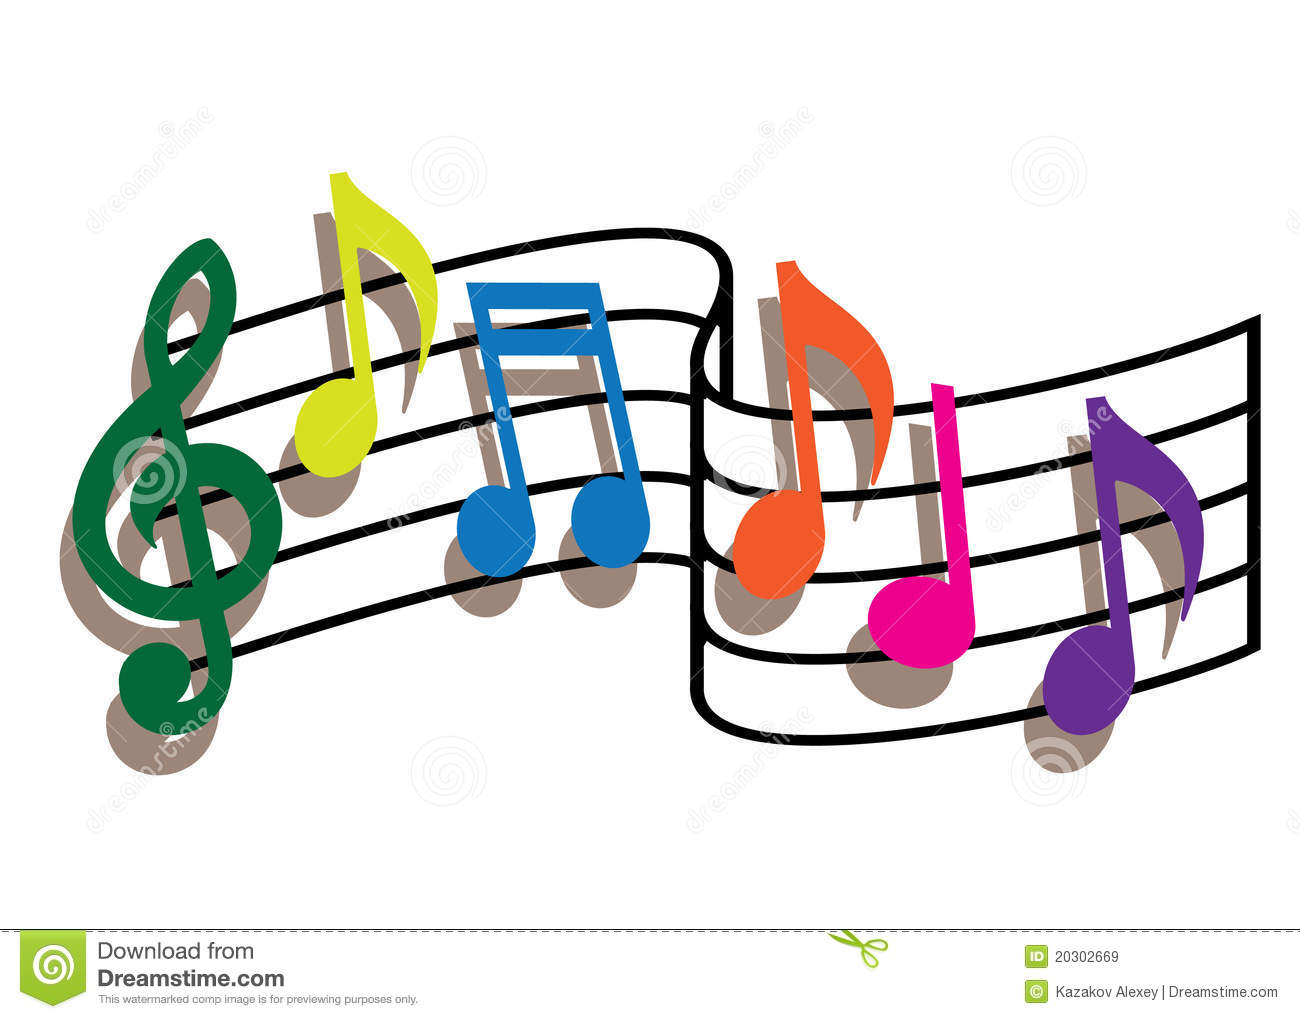 Images of music notes free download best images of music notes 1300x1019 picture colored music notes 25 about remodel free coloring book buycottarizona